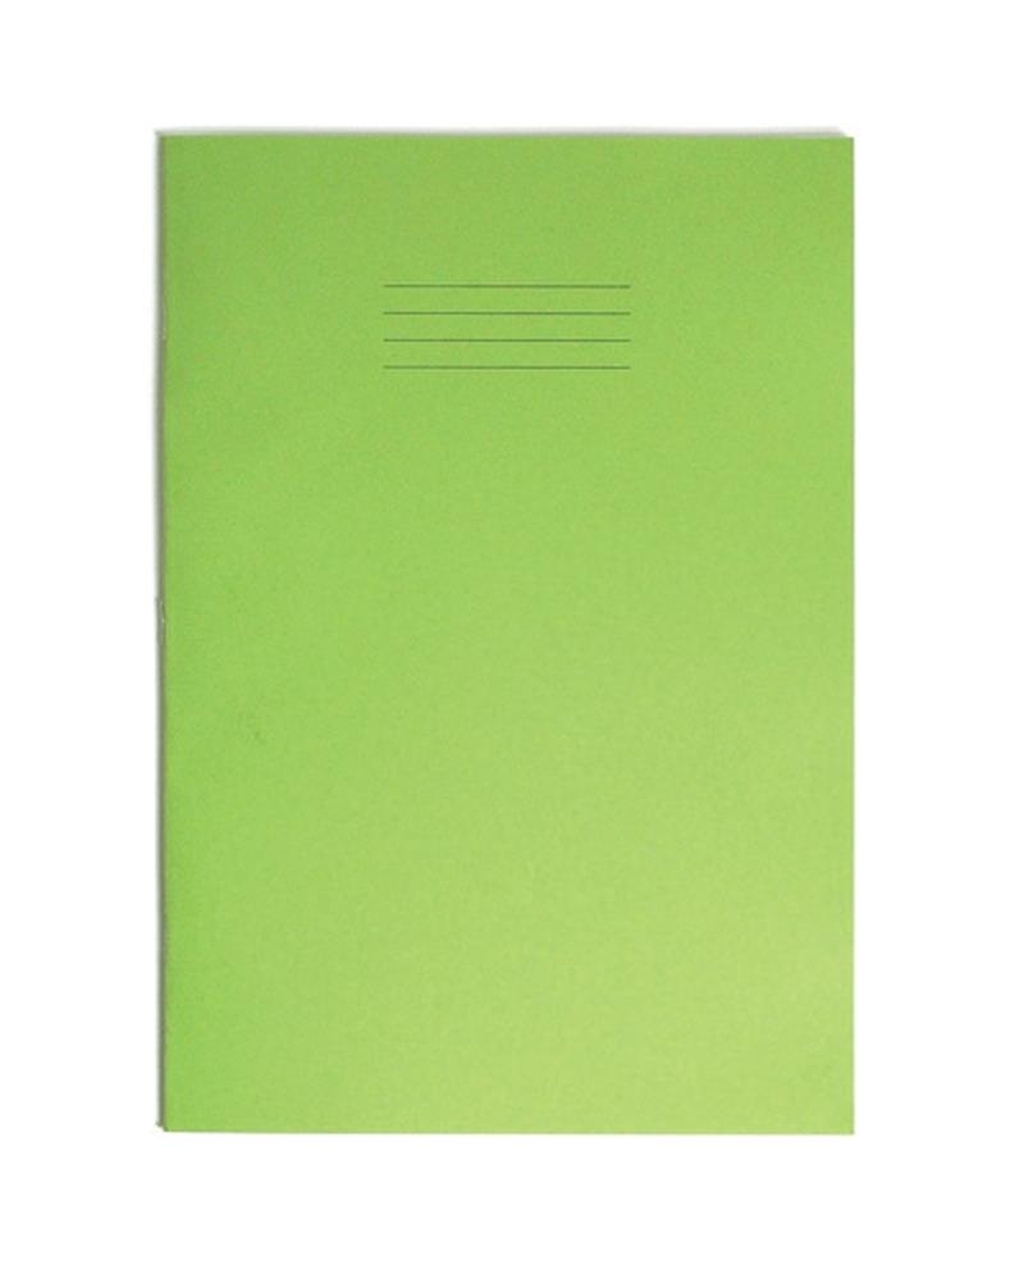 Exercise Book A4+ (330 x 250mm) Light Green Cover Plain - No Ruling 80 Pages